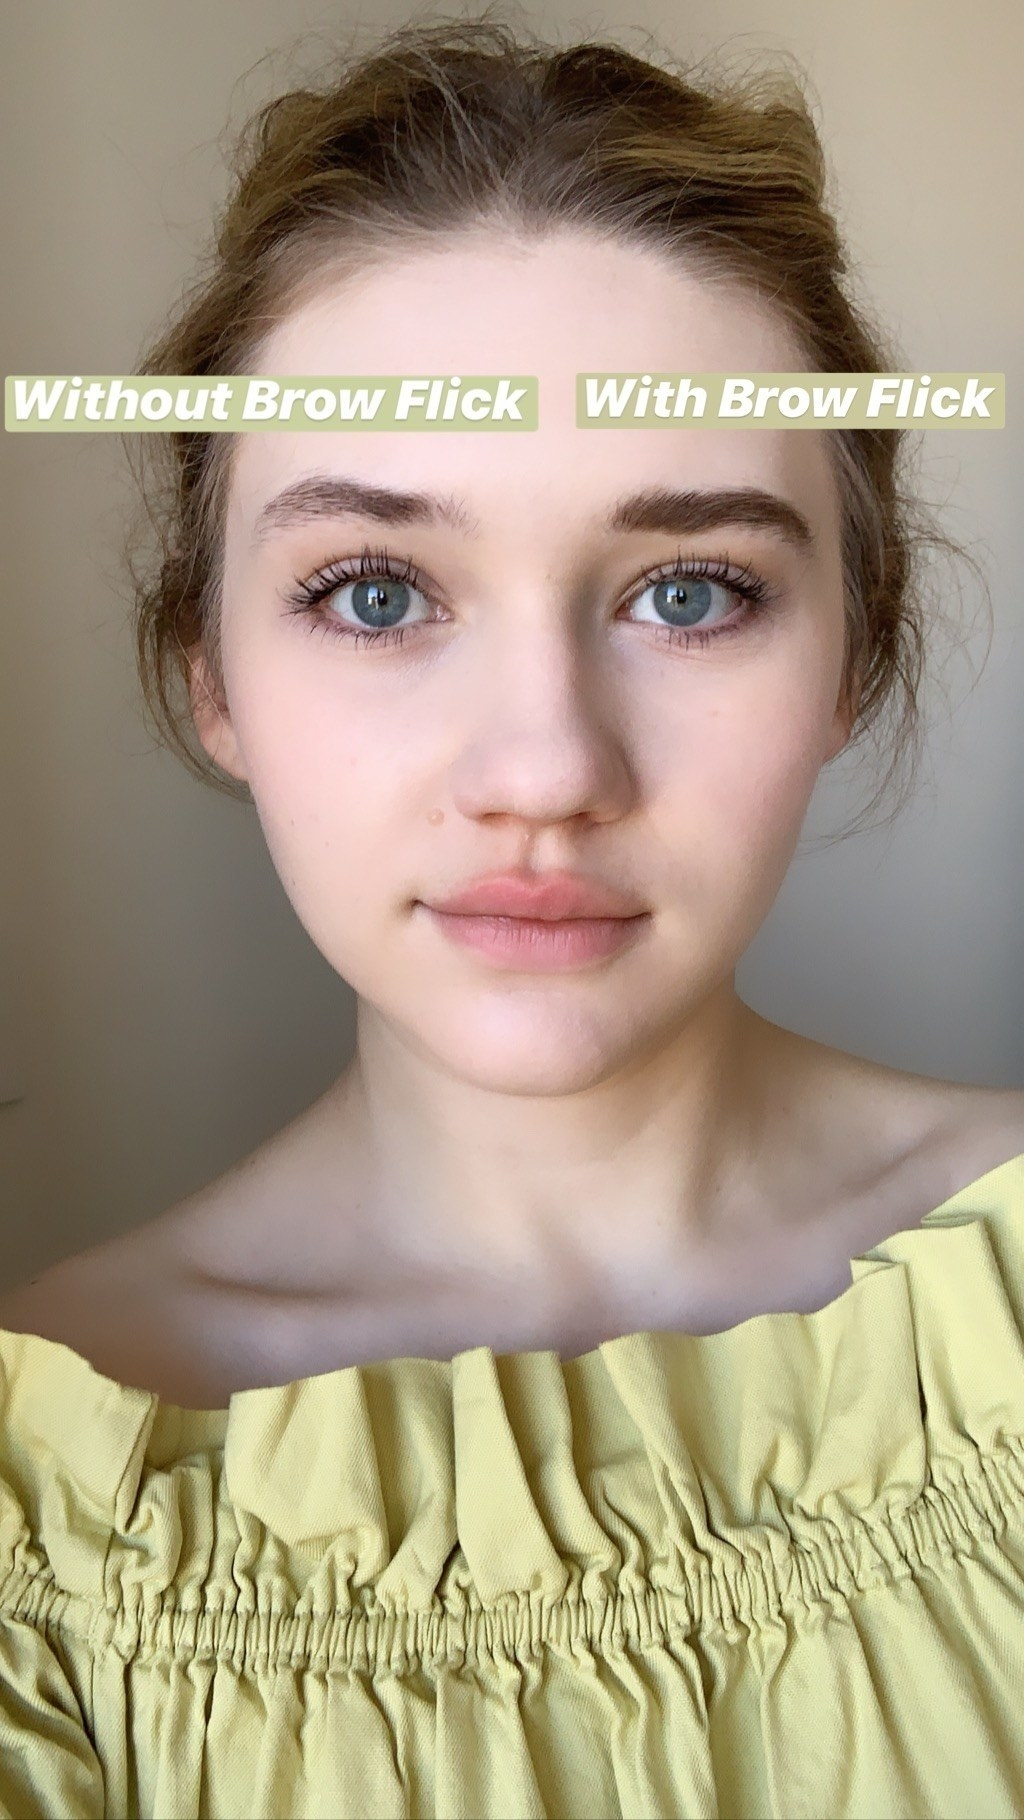 before and after photo of BuzzFeed Senior Editor Maitland with and without the brow product